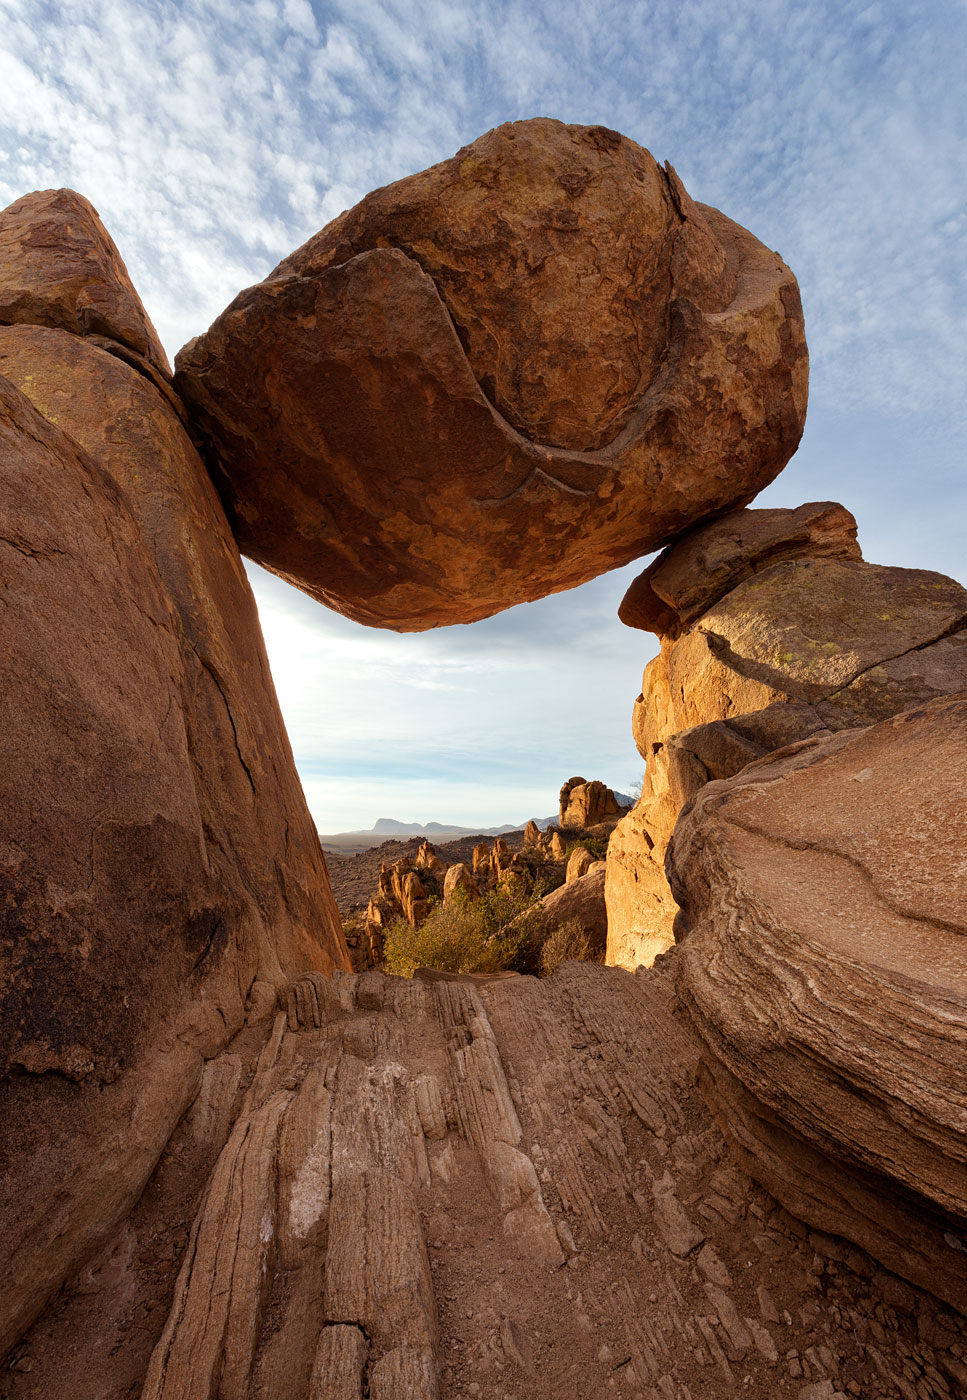 Big-Bend-National-Park-ABP-Balanced-Rock_vert.jpg